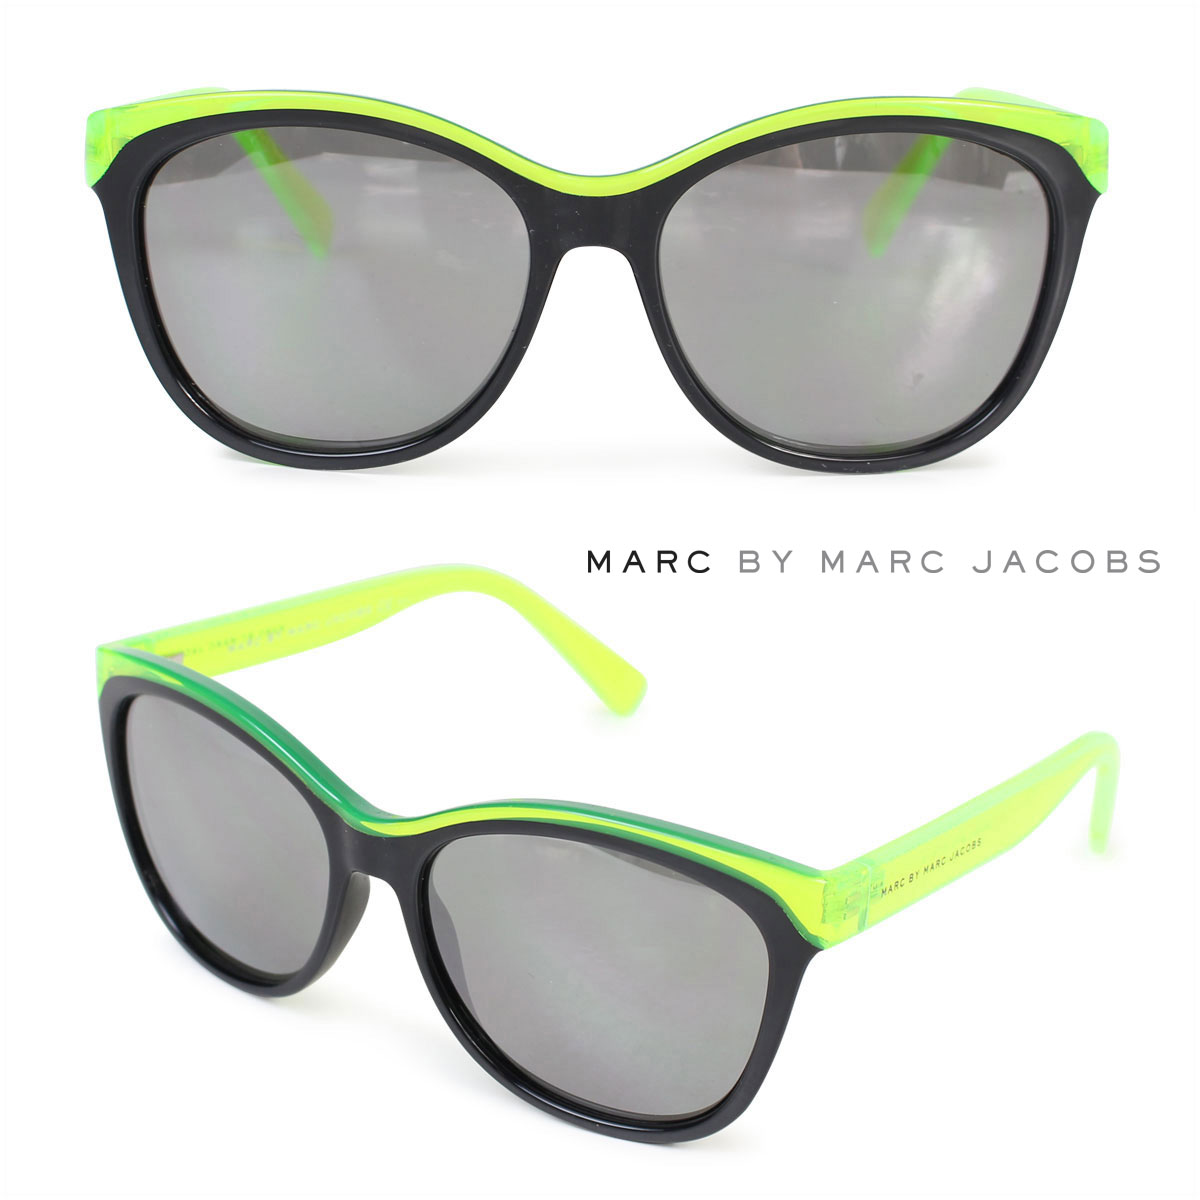 d35a5384dd1f MARC BY MARC JACOBS mark by mark Jacobs sunglasses Lady's MMJ439/S lime  black ...